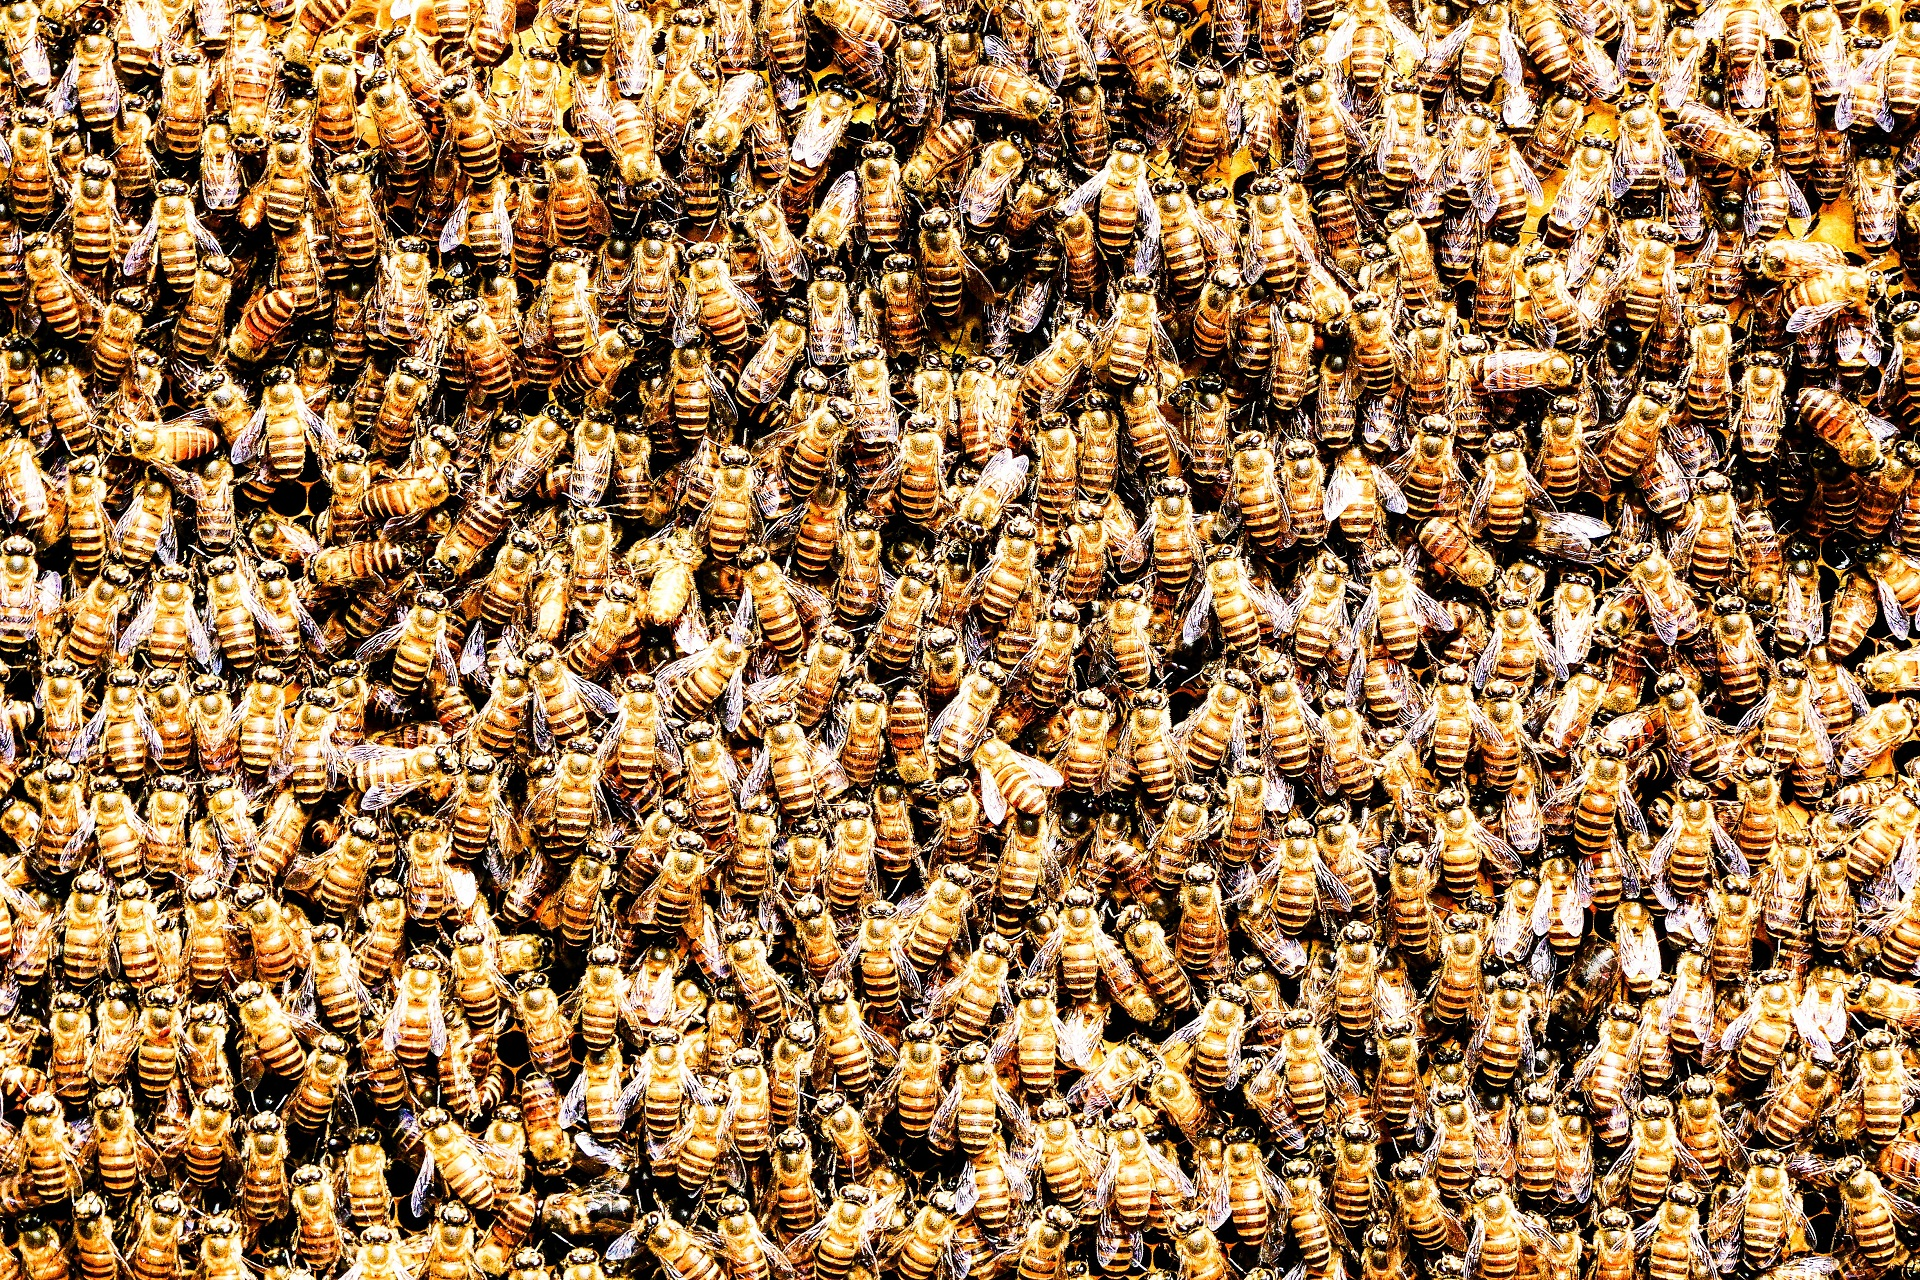 honey bees in a hive featured